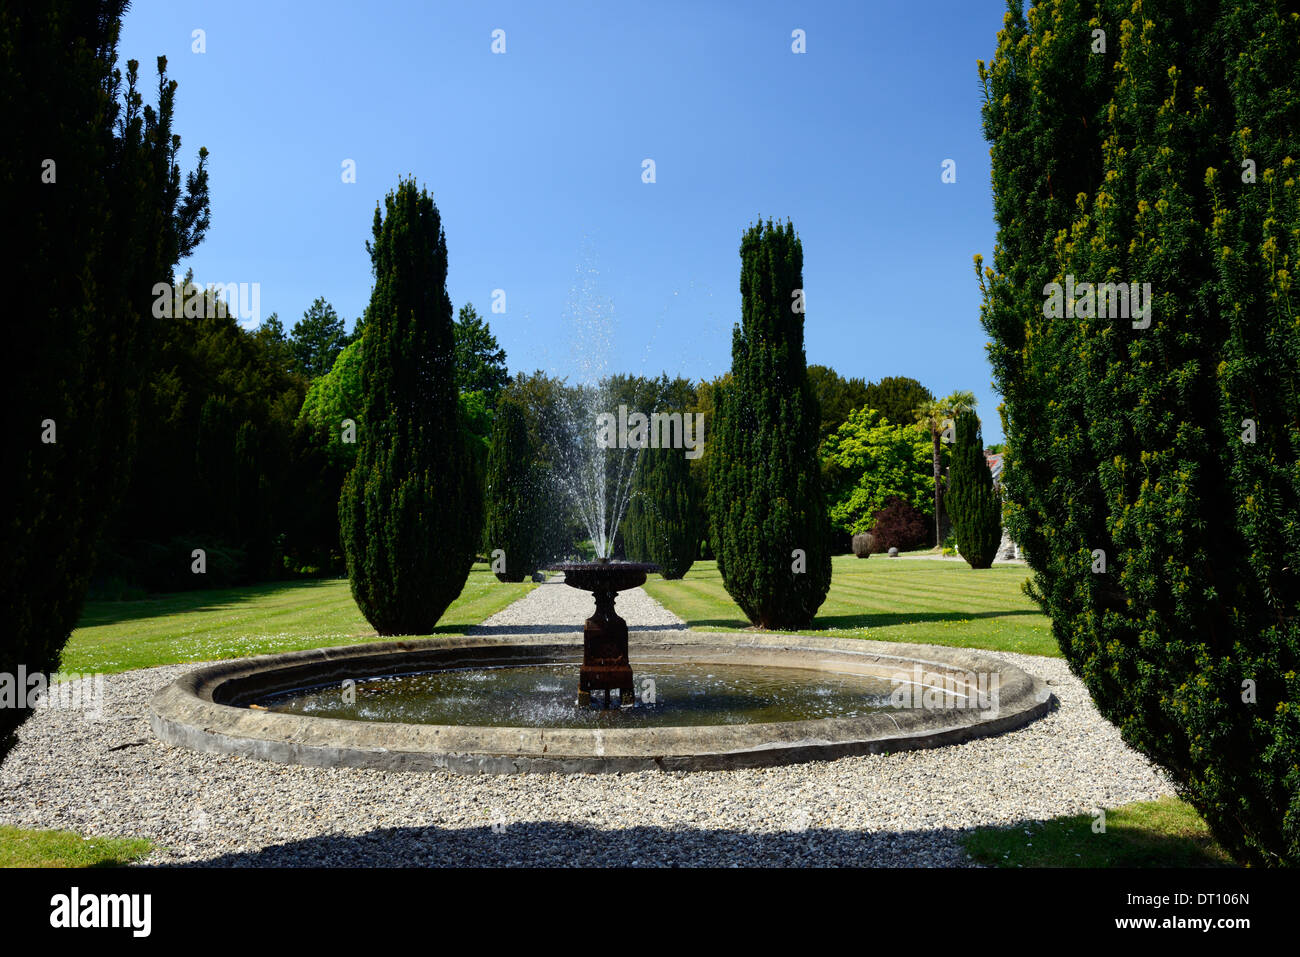 gardens of huntington castle clonegal carlow Fellowship of Isis plantation castle - Stock Image